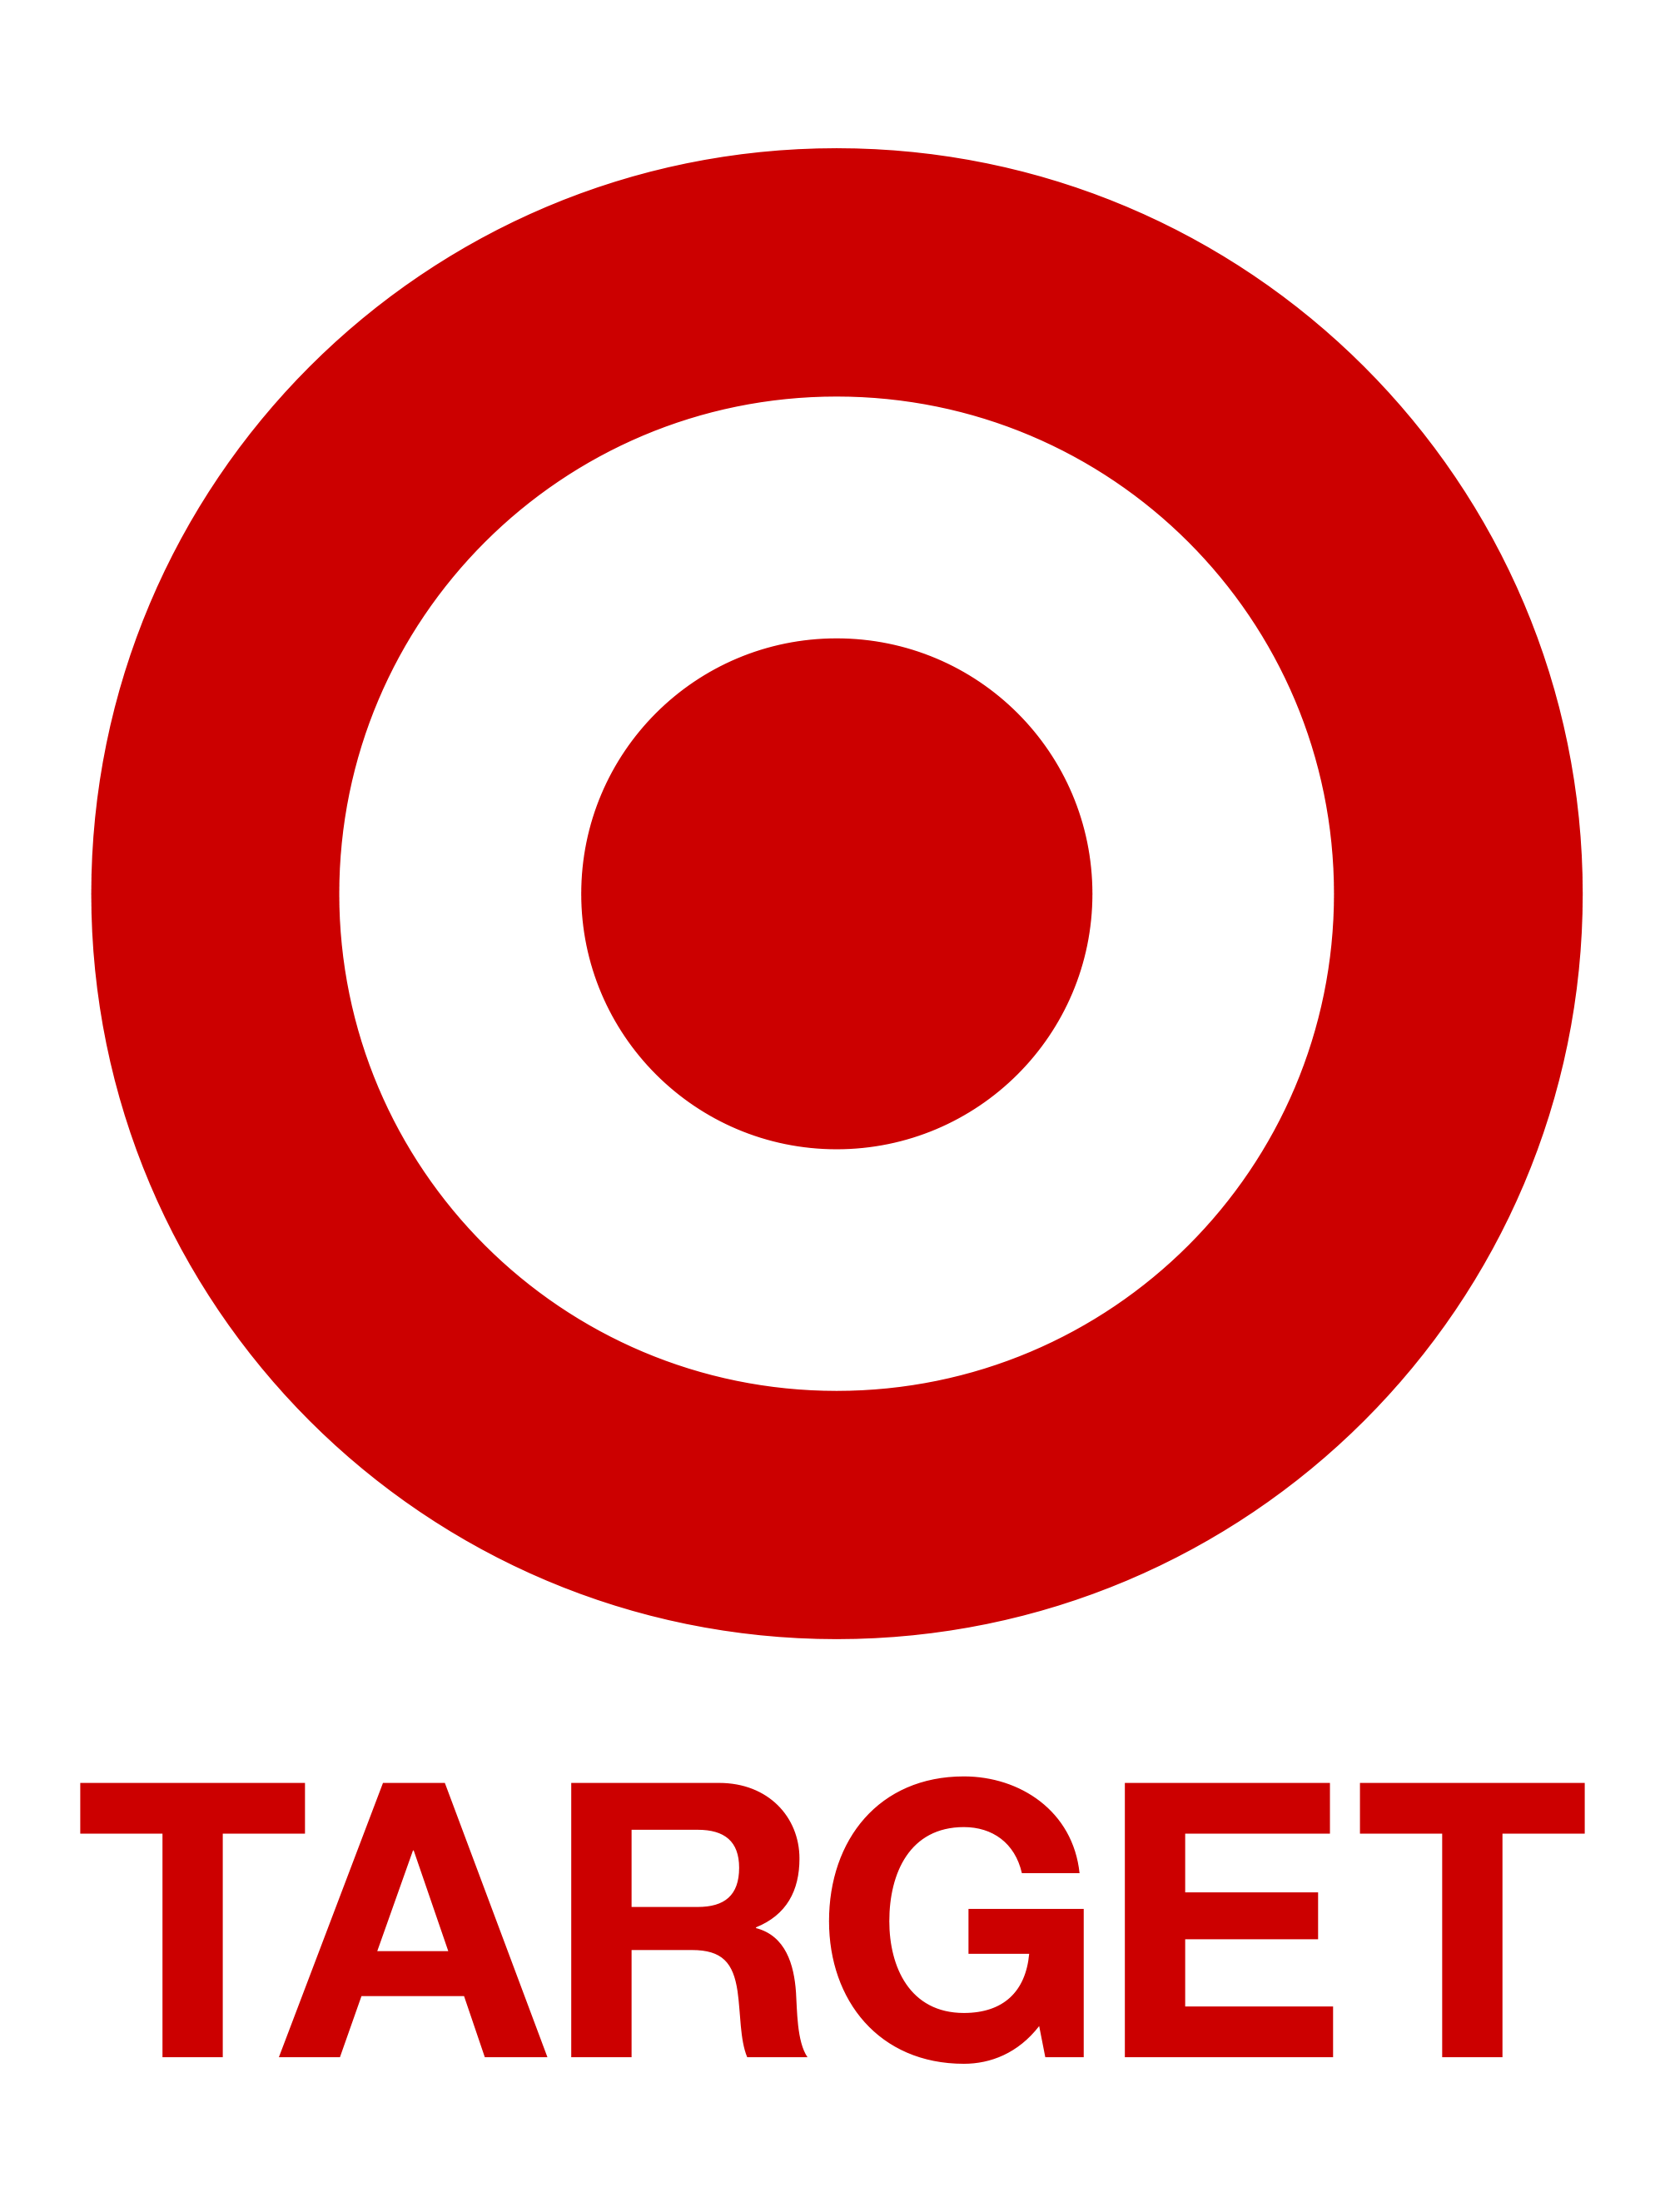 Target Sitewide Coupon: Apparel, Home Goods, Electronics & More  10% Off (Exclusions Apply)